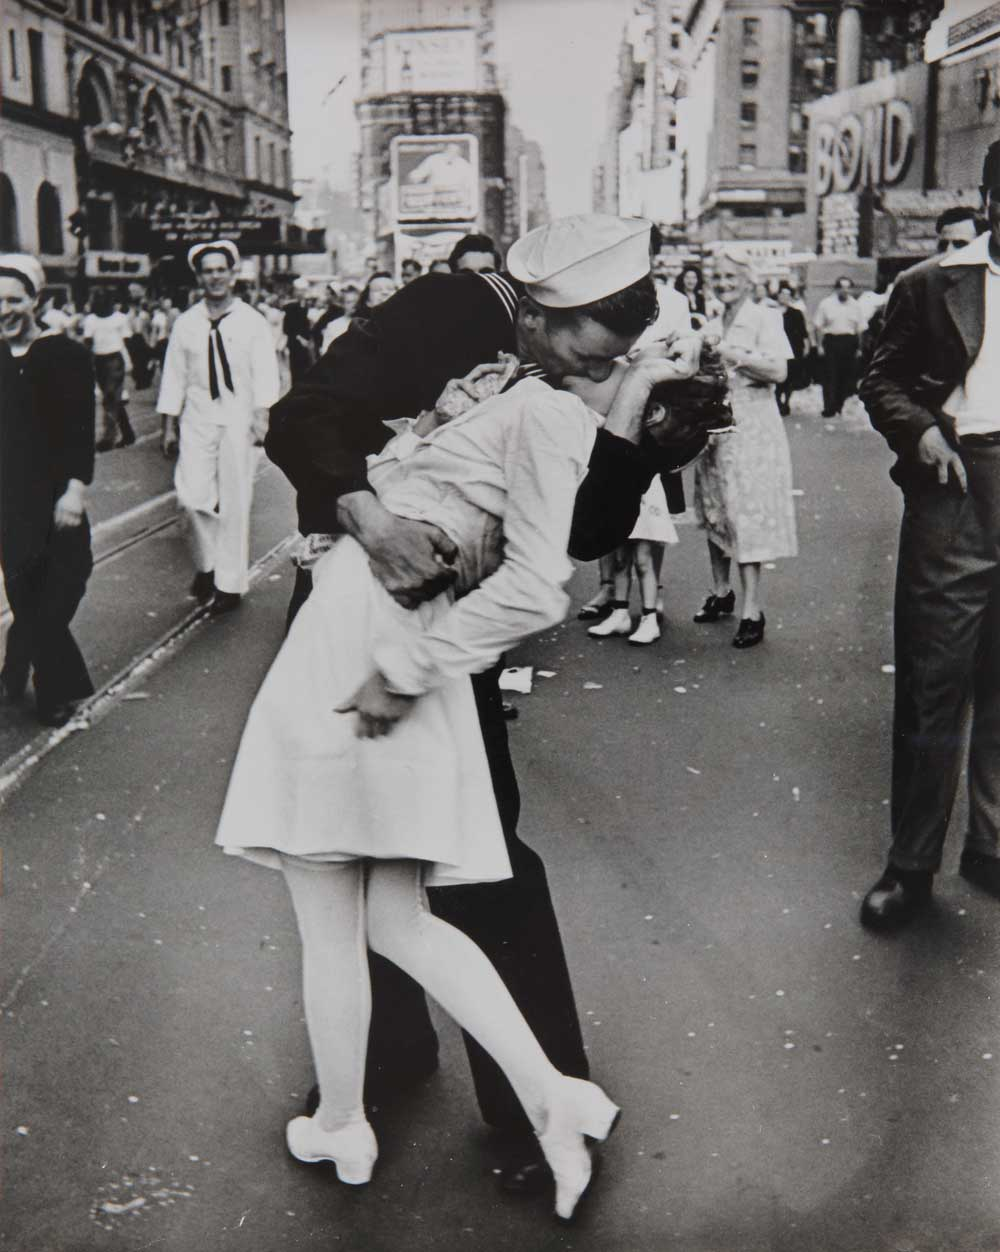 Alfred Eisenstaedt, V-J Day (Kiss), Times Square, New York City, 14. August, 1945, Silbergelatineabzug, © Alfred Eisenstaedt / Time & Life Pictures / Getty Images; Skrein Photo Collection